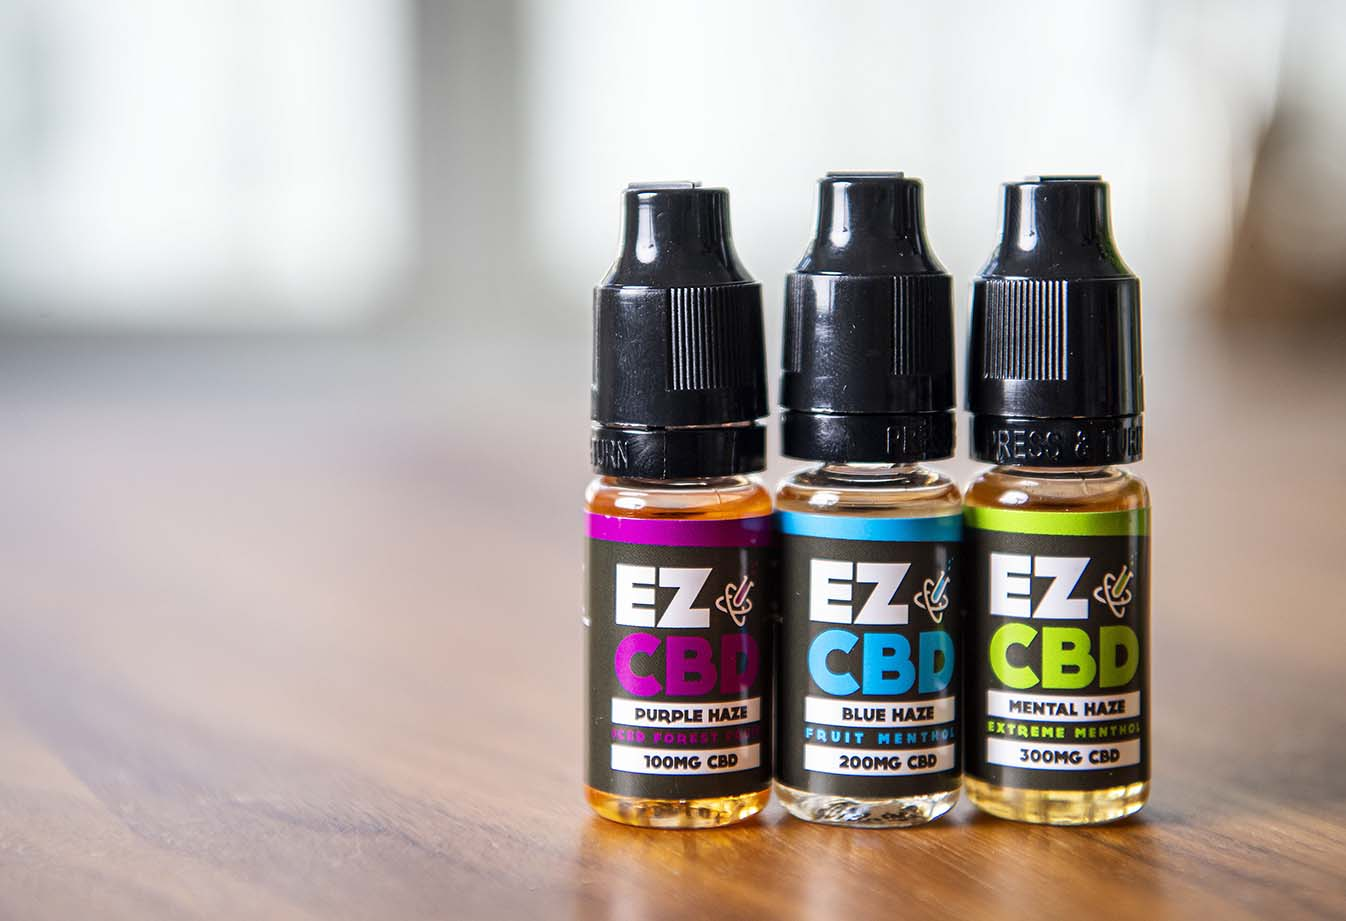 EZ CBD All